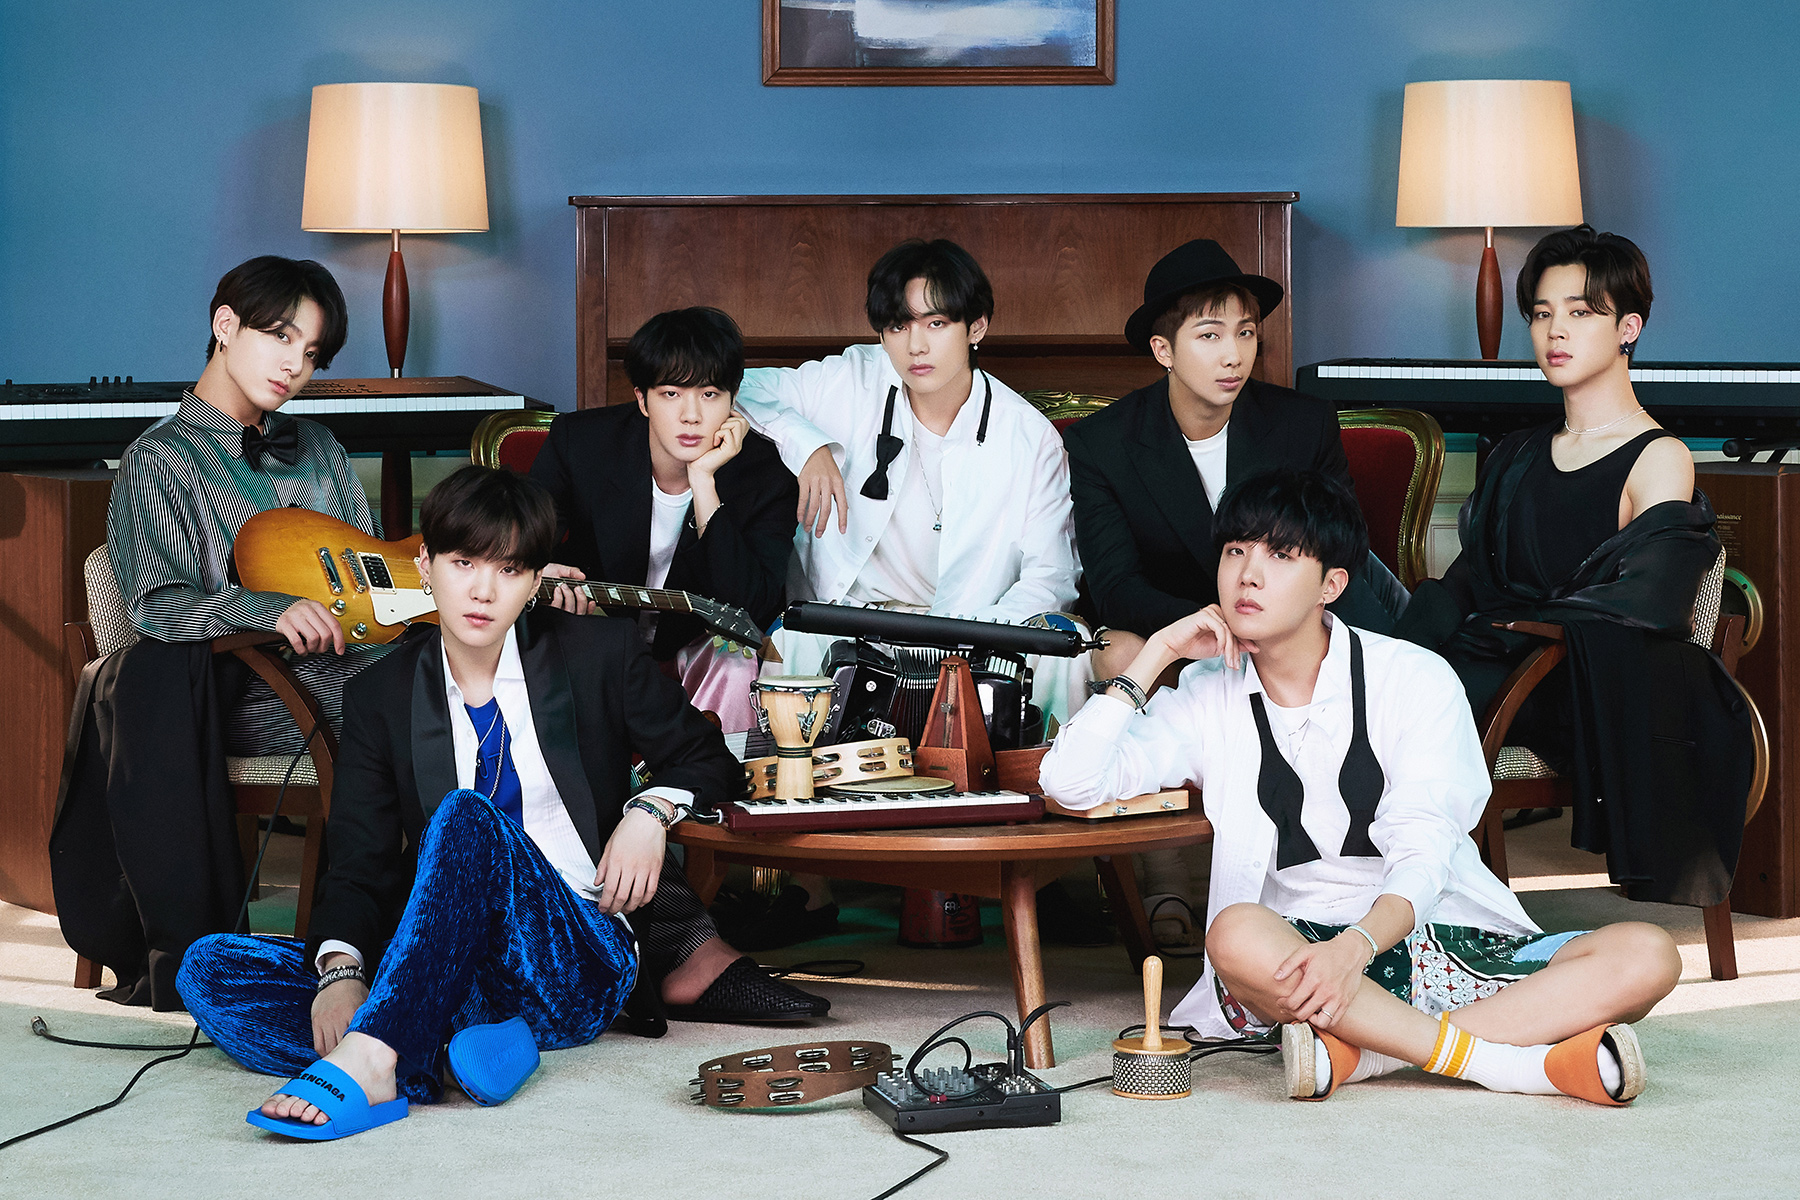 Big Hit and Universal Music Will Launch a New Boy Band Together - Rolling Stone